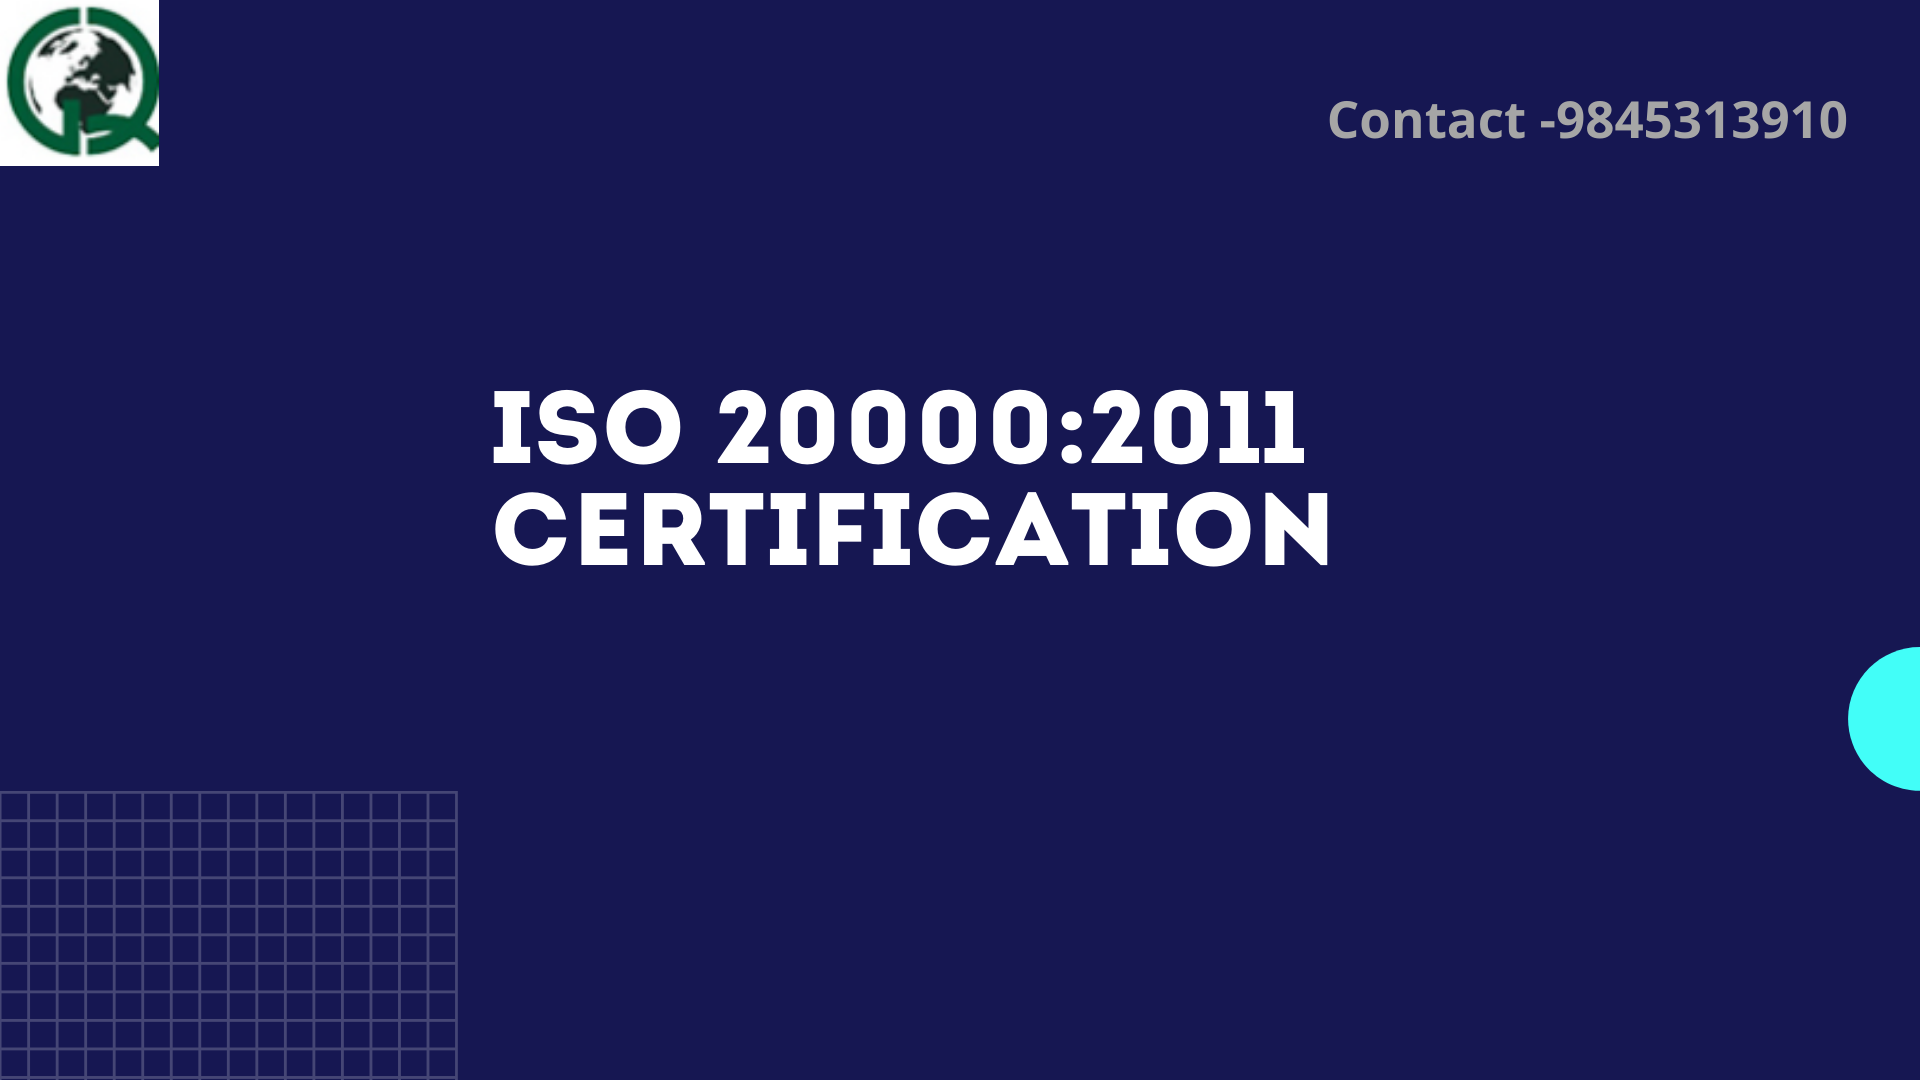 ISO 20000:2011 Certification